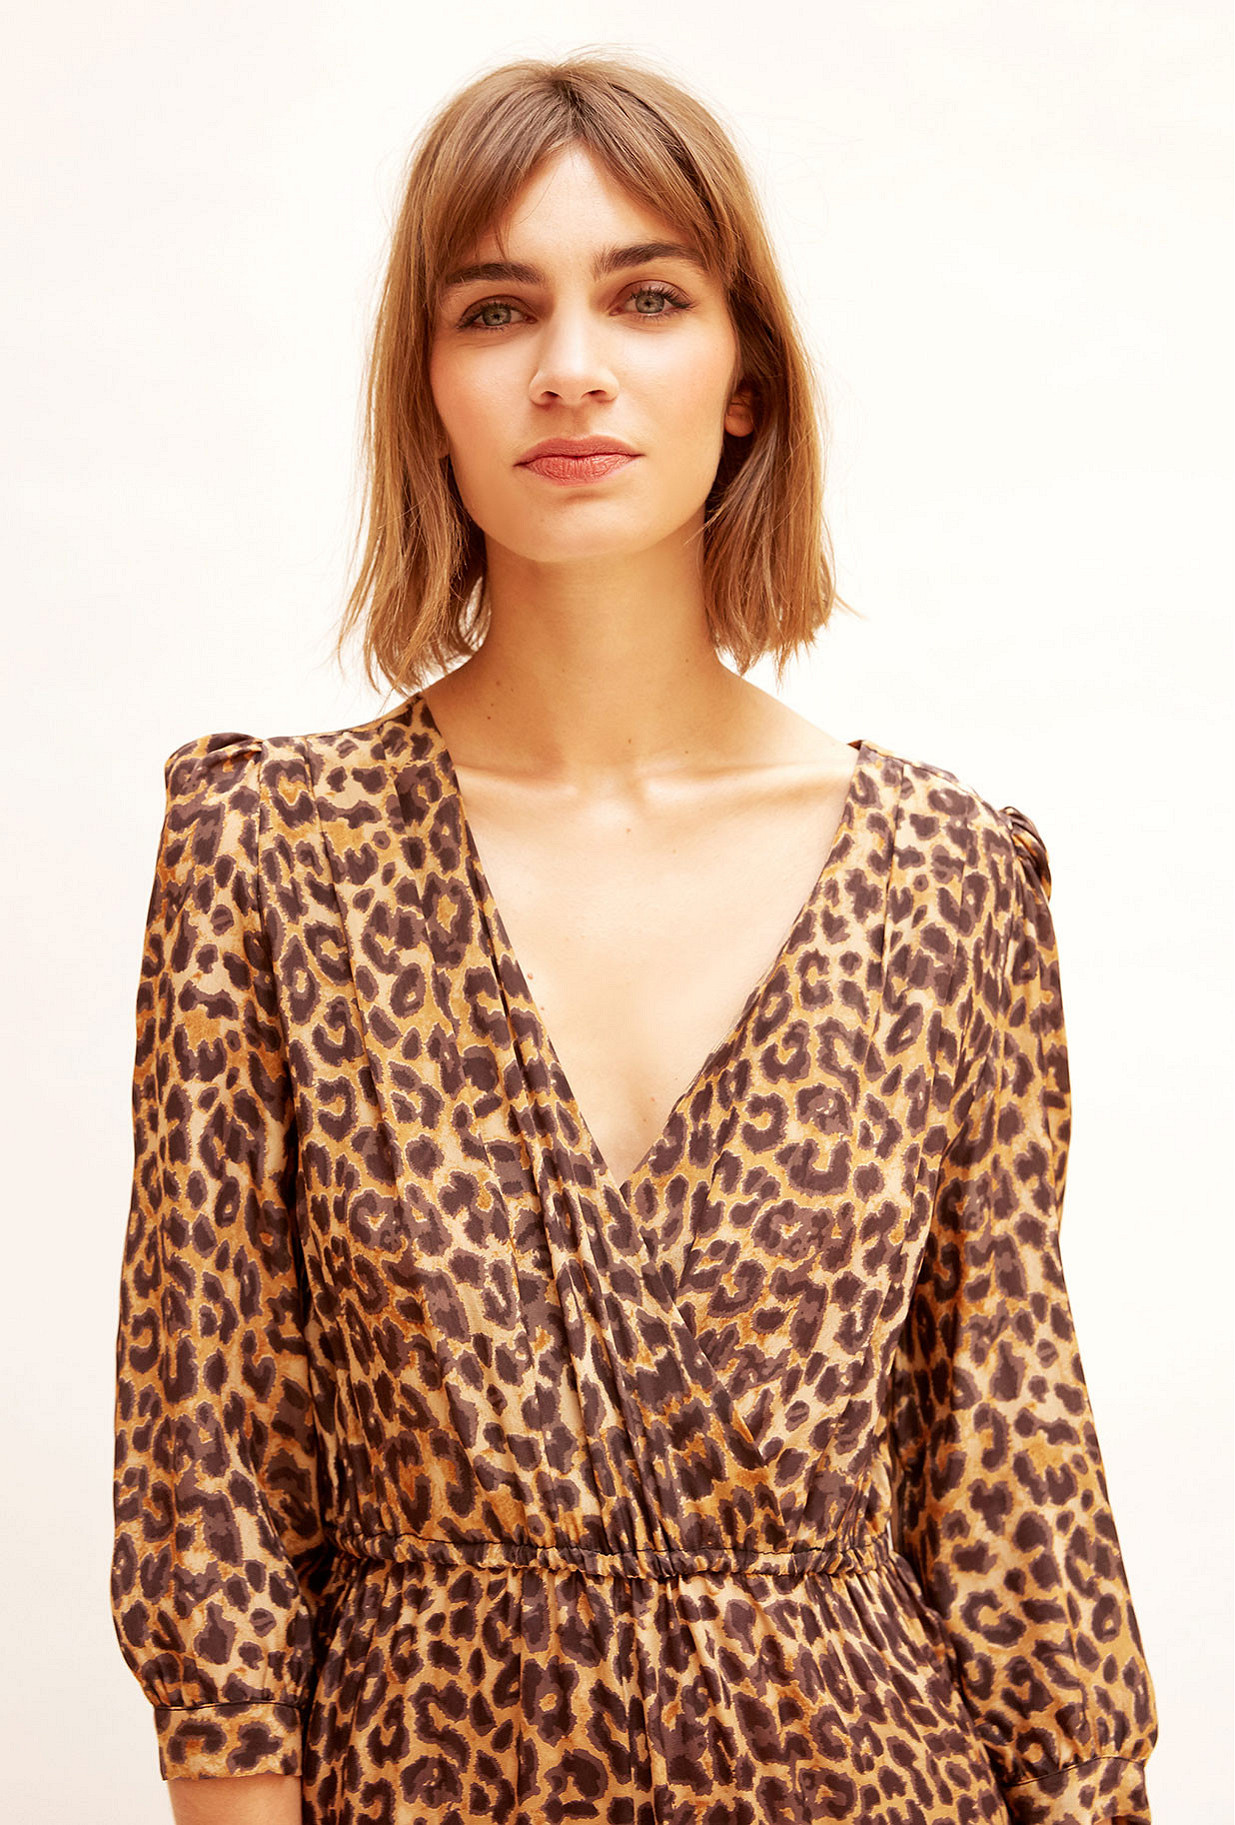 Panther print  Jumpsuit  Slash Mes demoiselles fashion clothes designer Paris